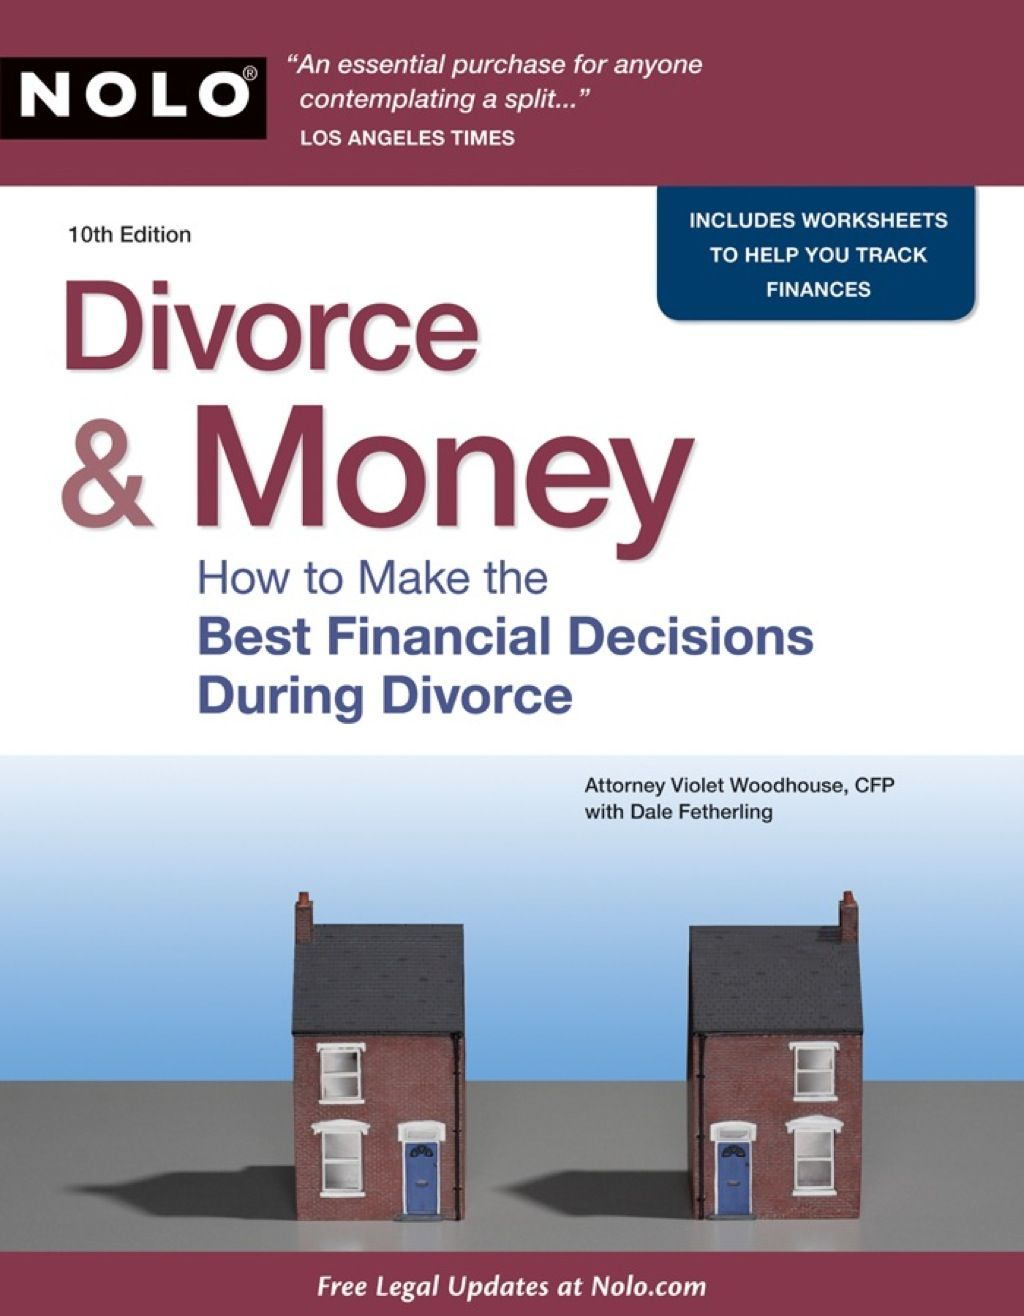 Divorce & Money: How to Make the Best Financial Decisions